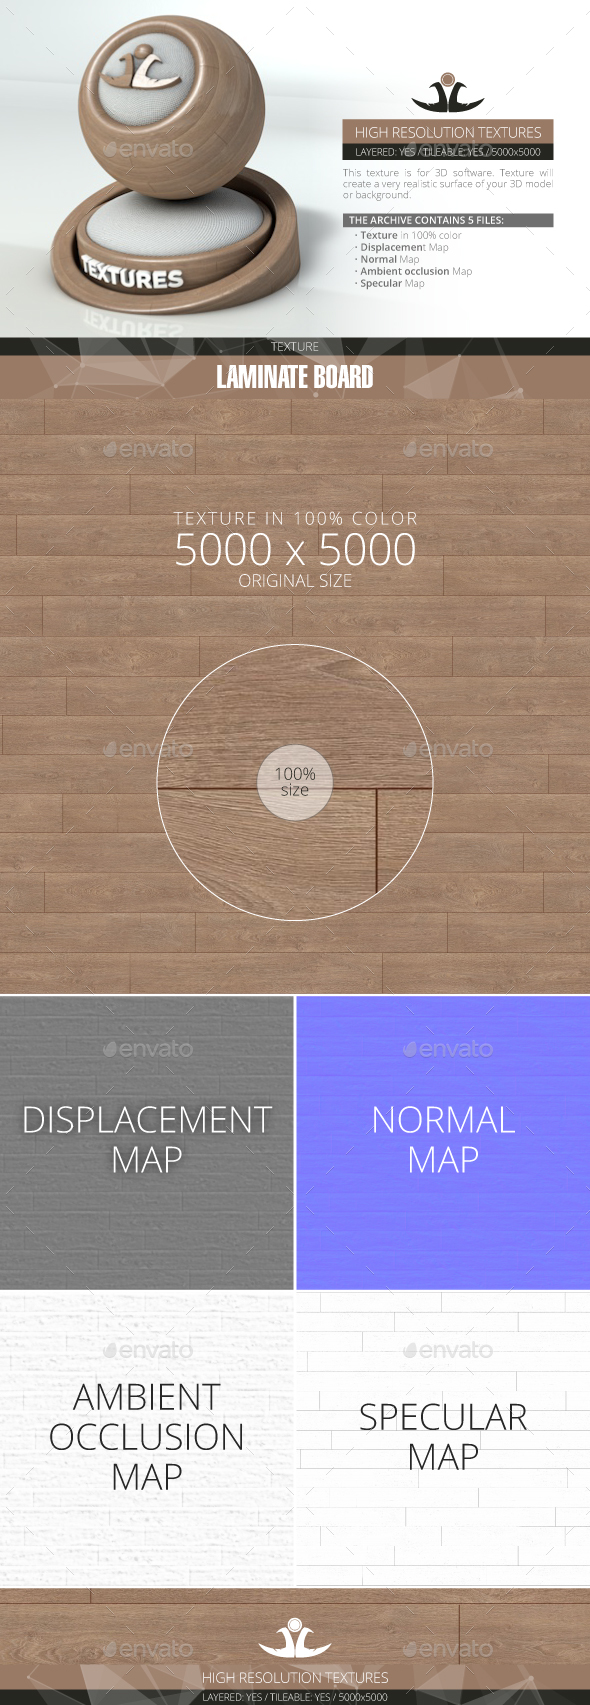 Laminate Board 28 - 3DOcean Item for Sale